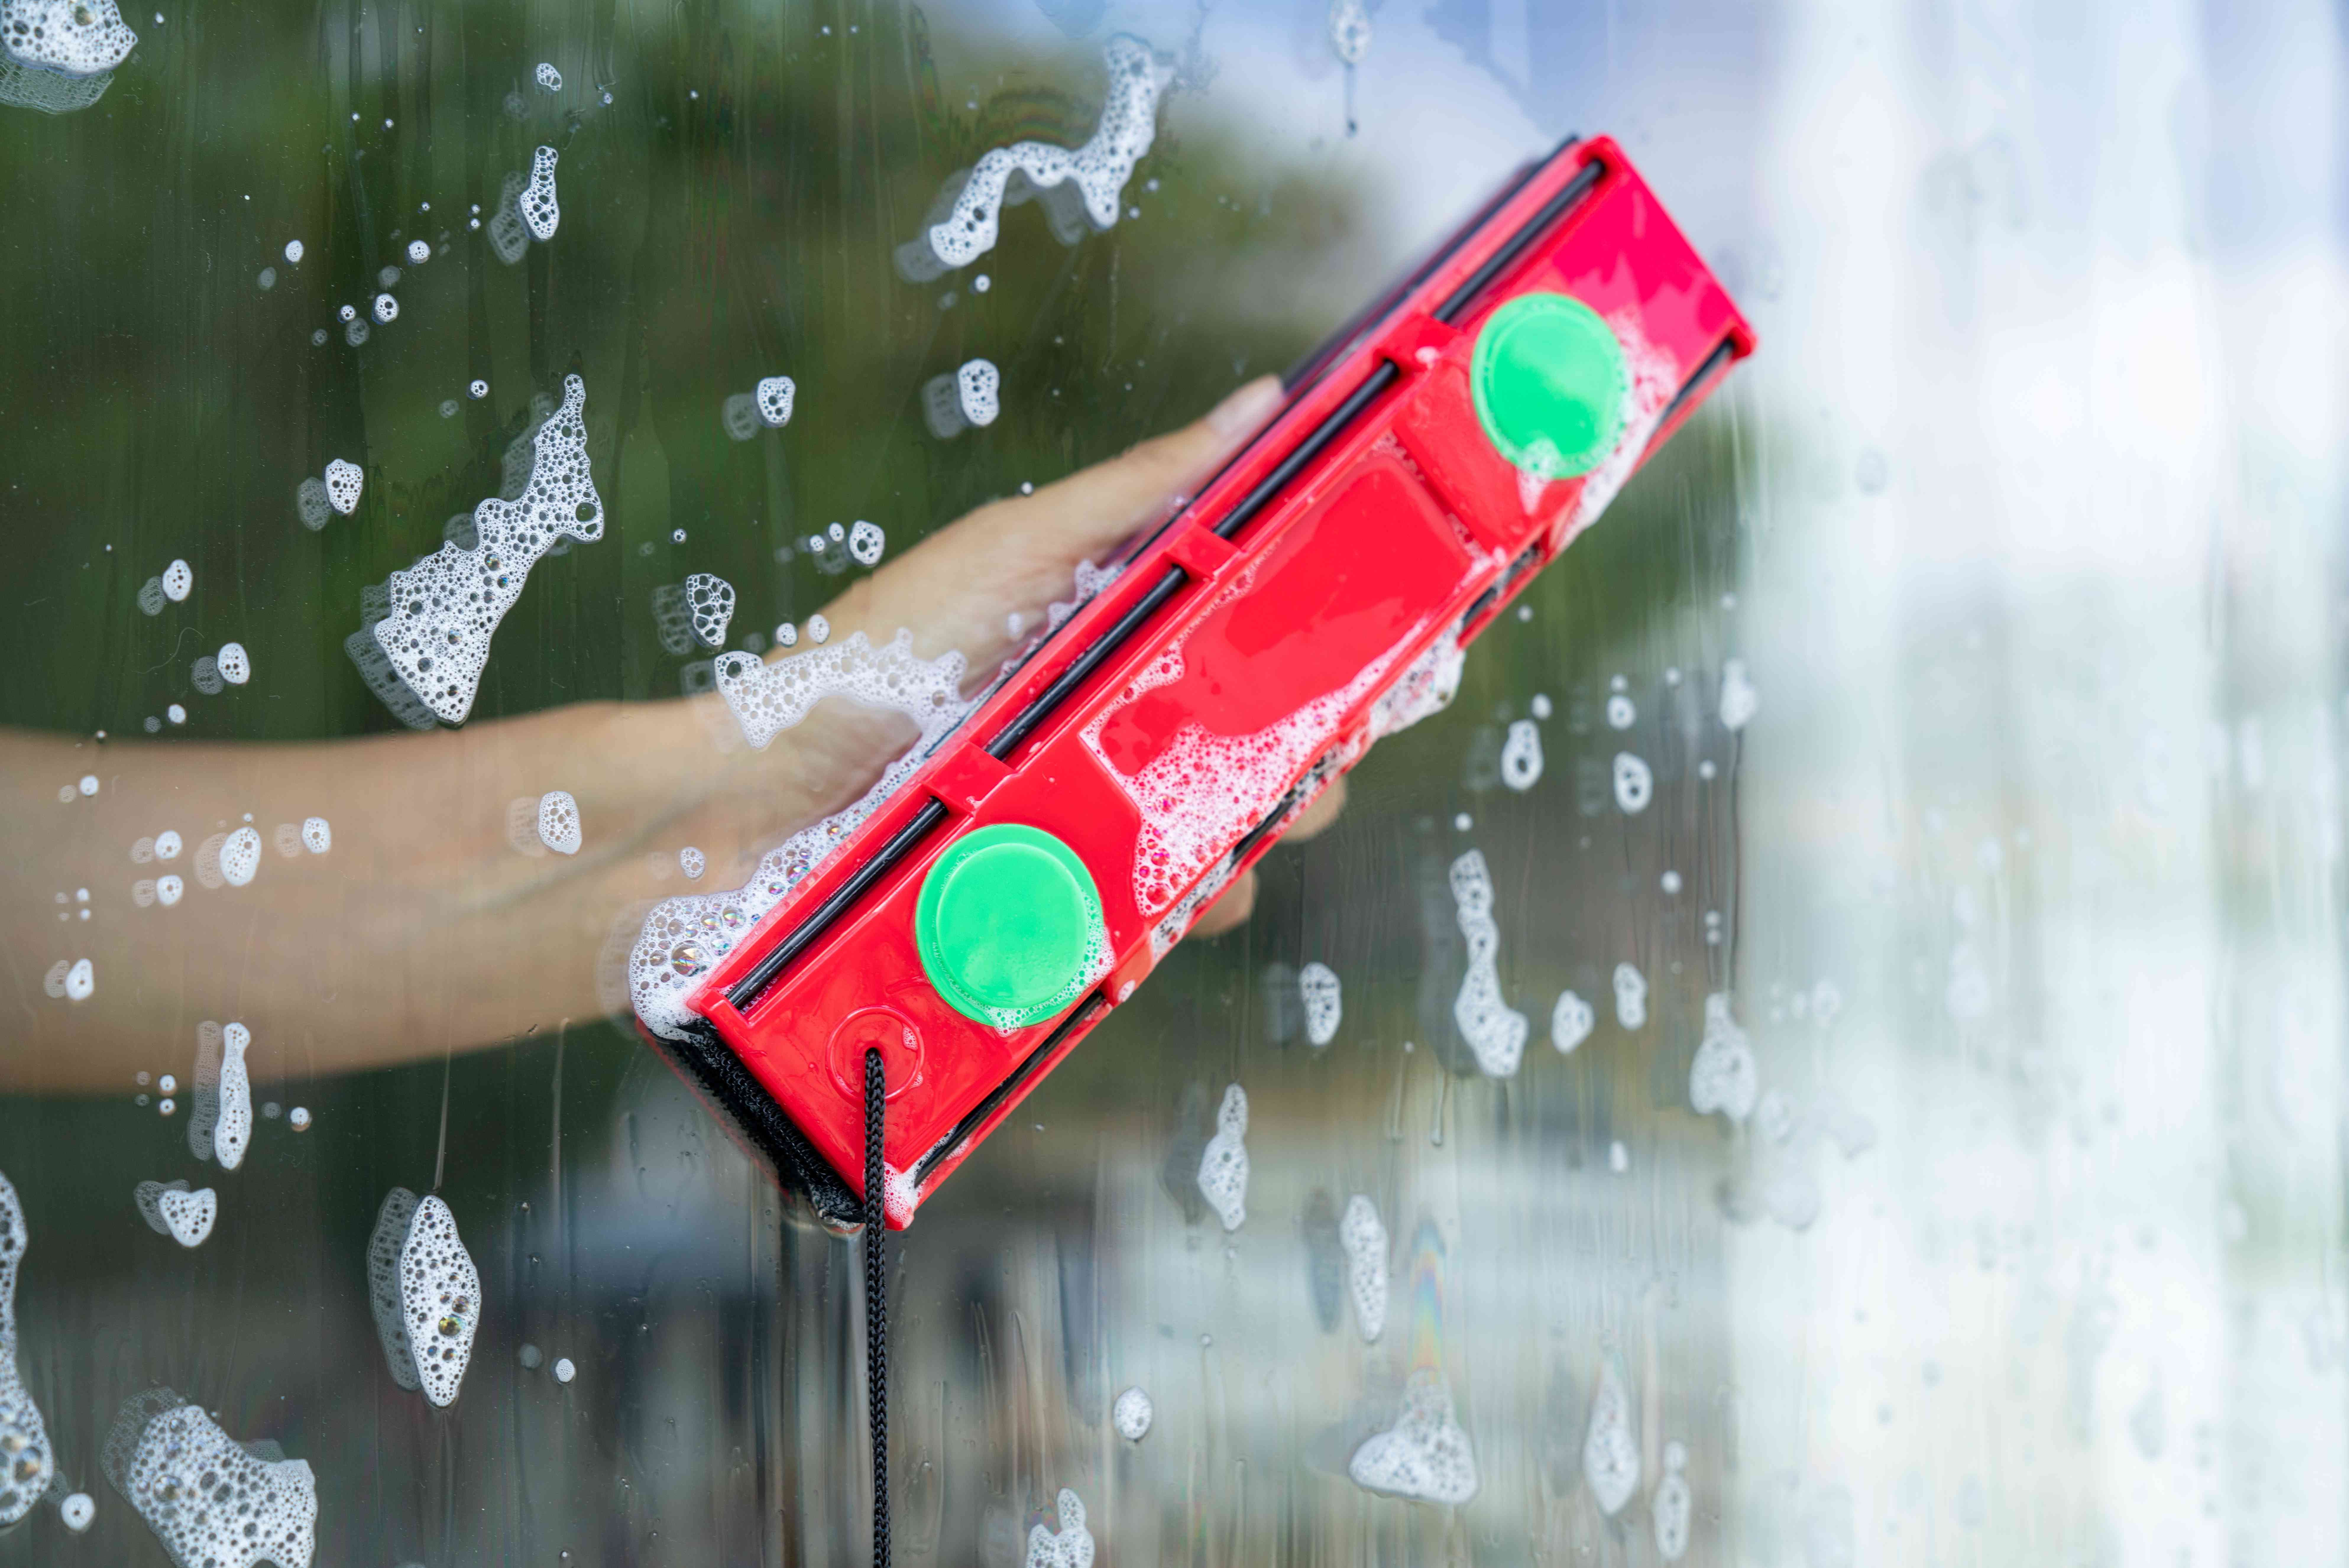 5 Ways To Clean Outside Windows Before Winter